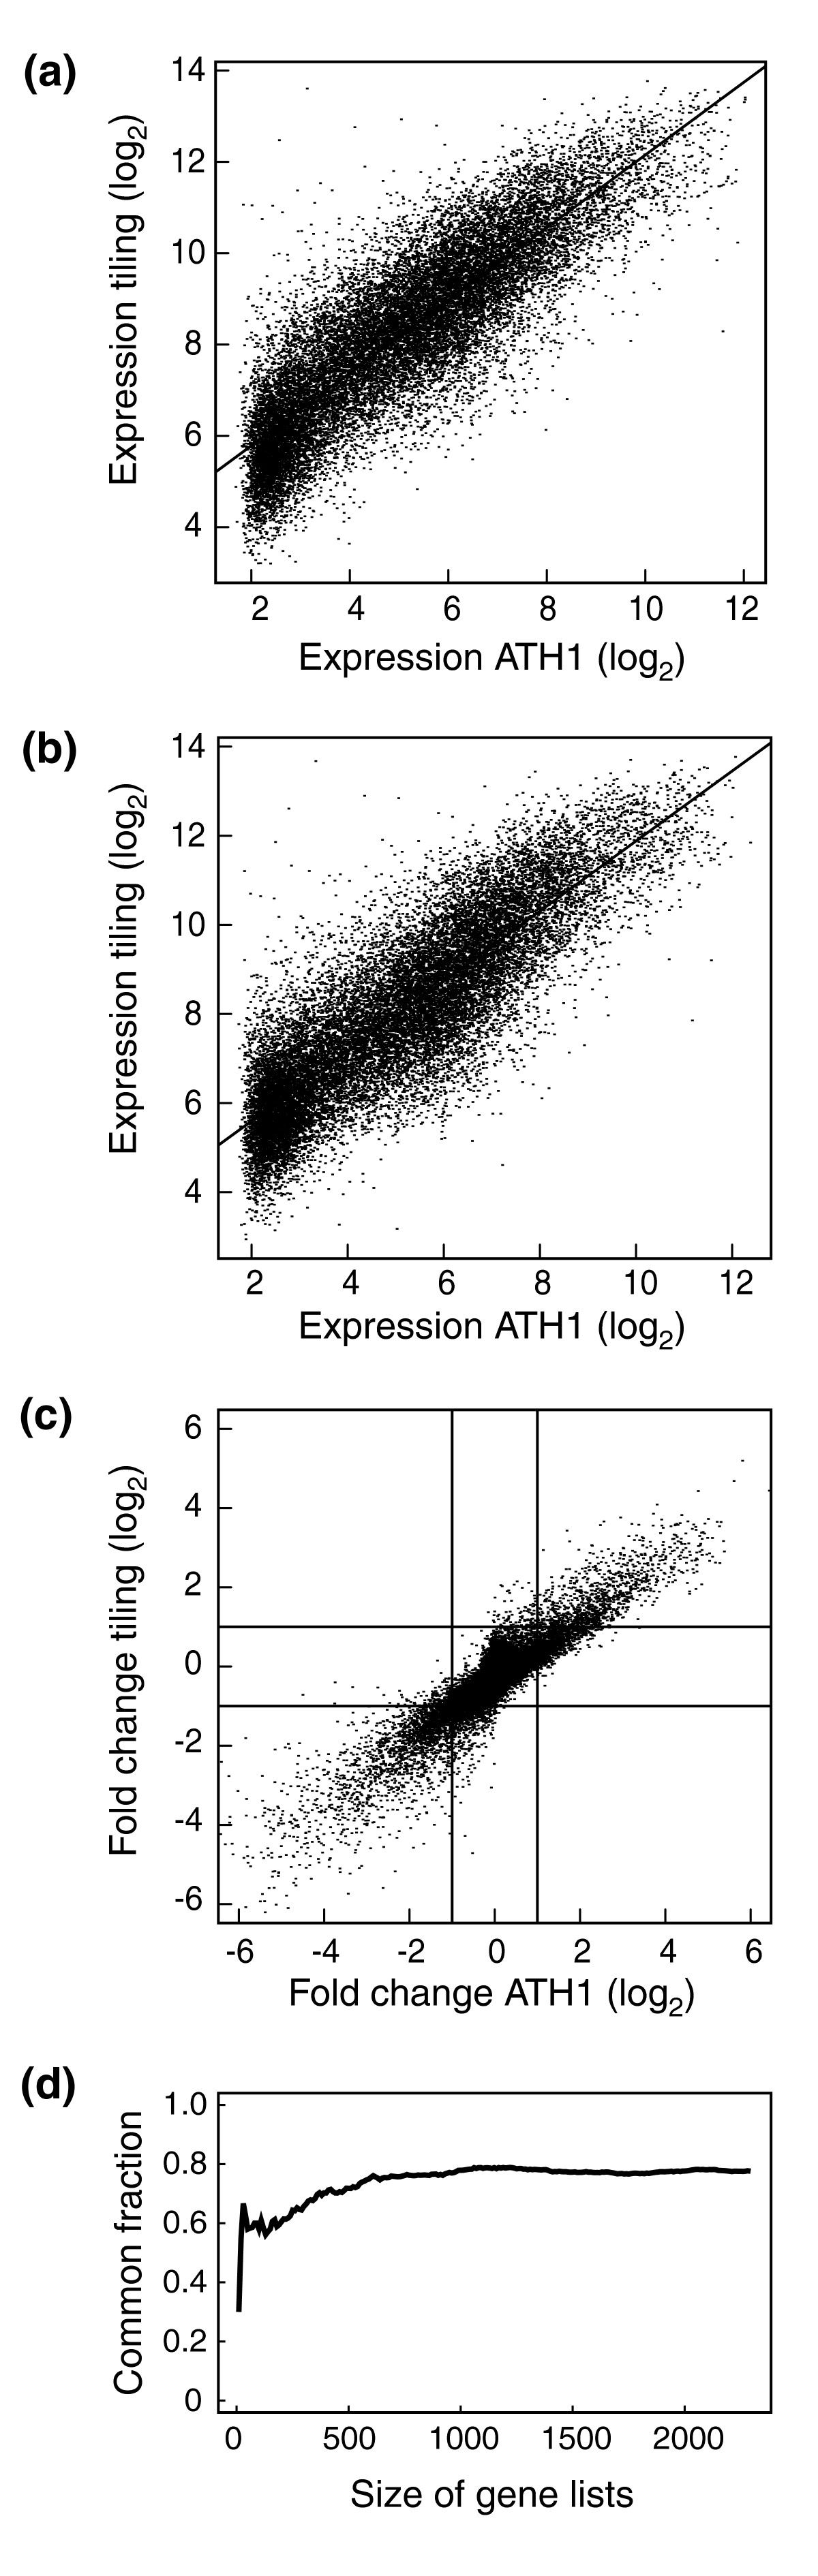 https://static-content.springer.com/image/art%3A10.1186%2Fgb-2008-9-7-r112/MediaObjects/13059_2008_Article_1974_Fig1_HTML.jpg